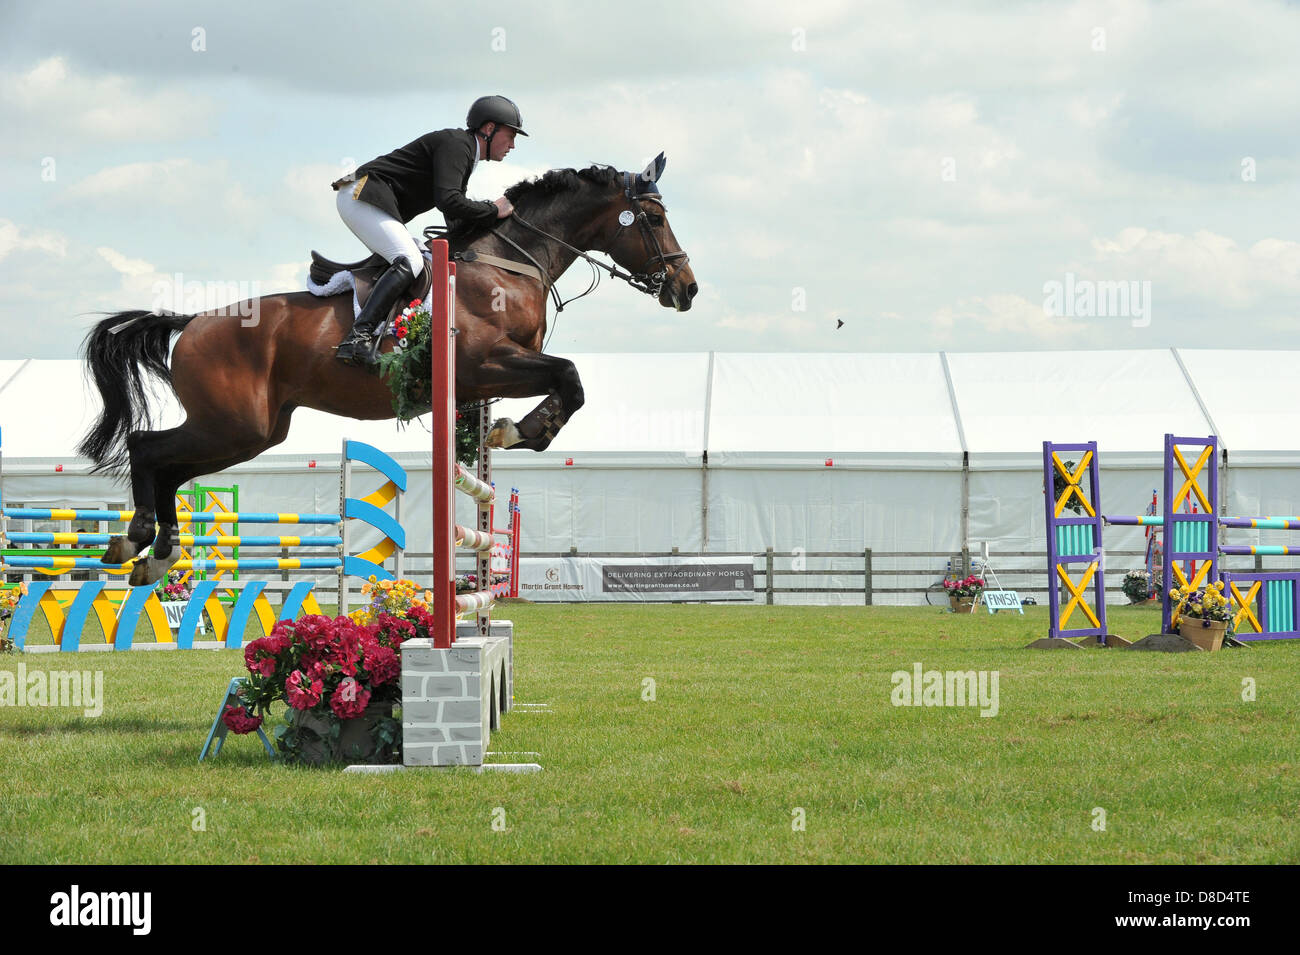 REDBOURN, UK. 25th May 2013. Show jumping at the Hertfordshire County Show. Lance Whitehouse competes in the National - Stock Image